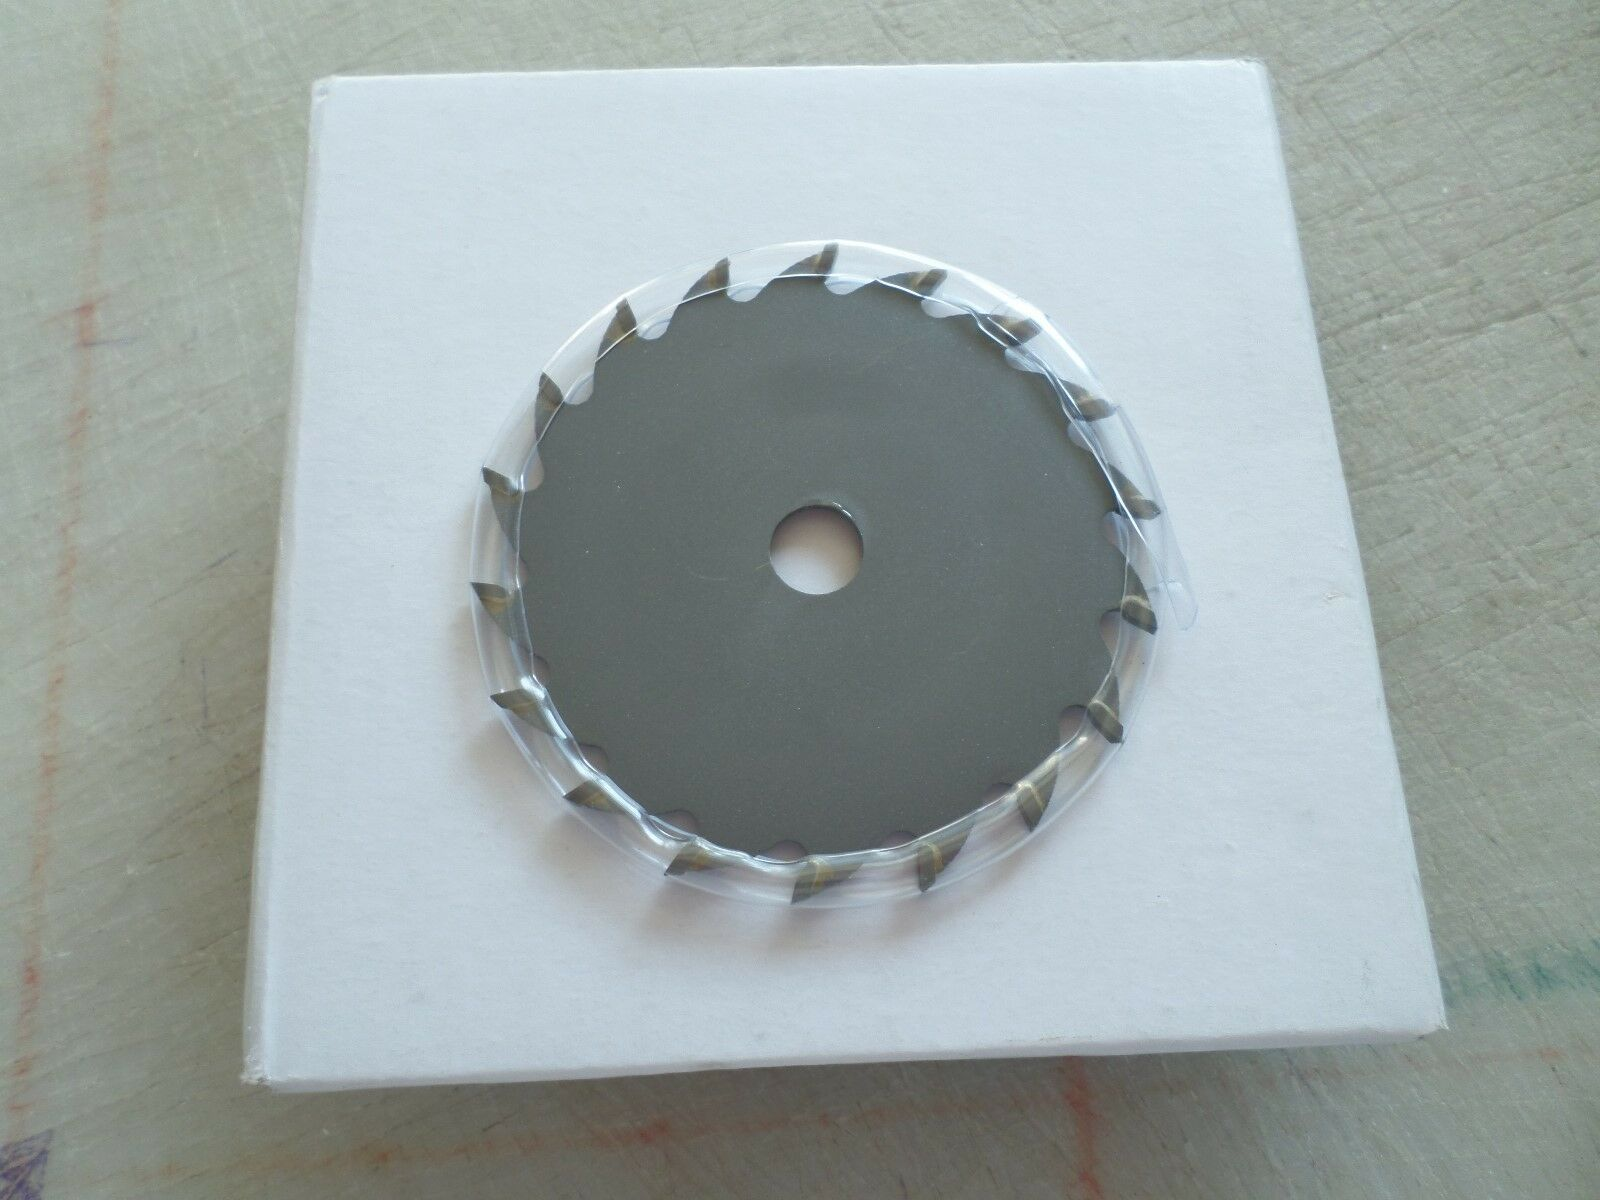 Replacement craftsman or mastermind 3 carbide tipped circular saw picture 1 of 2 keyboard keysfo Choice Image